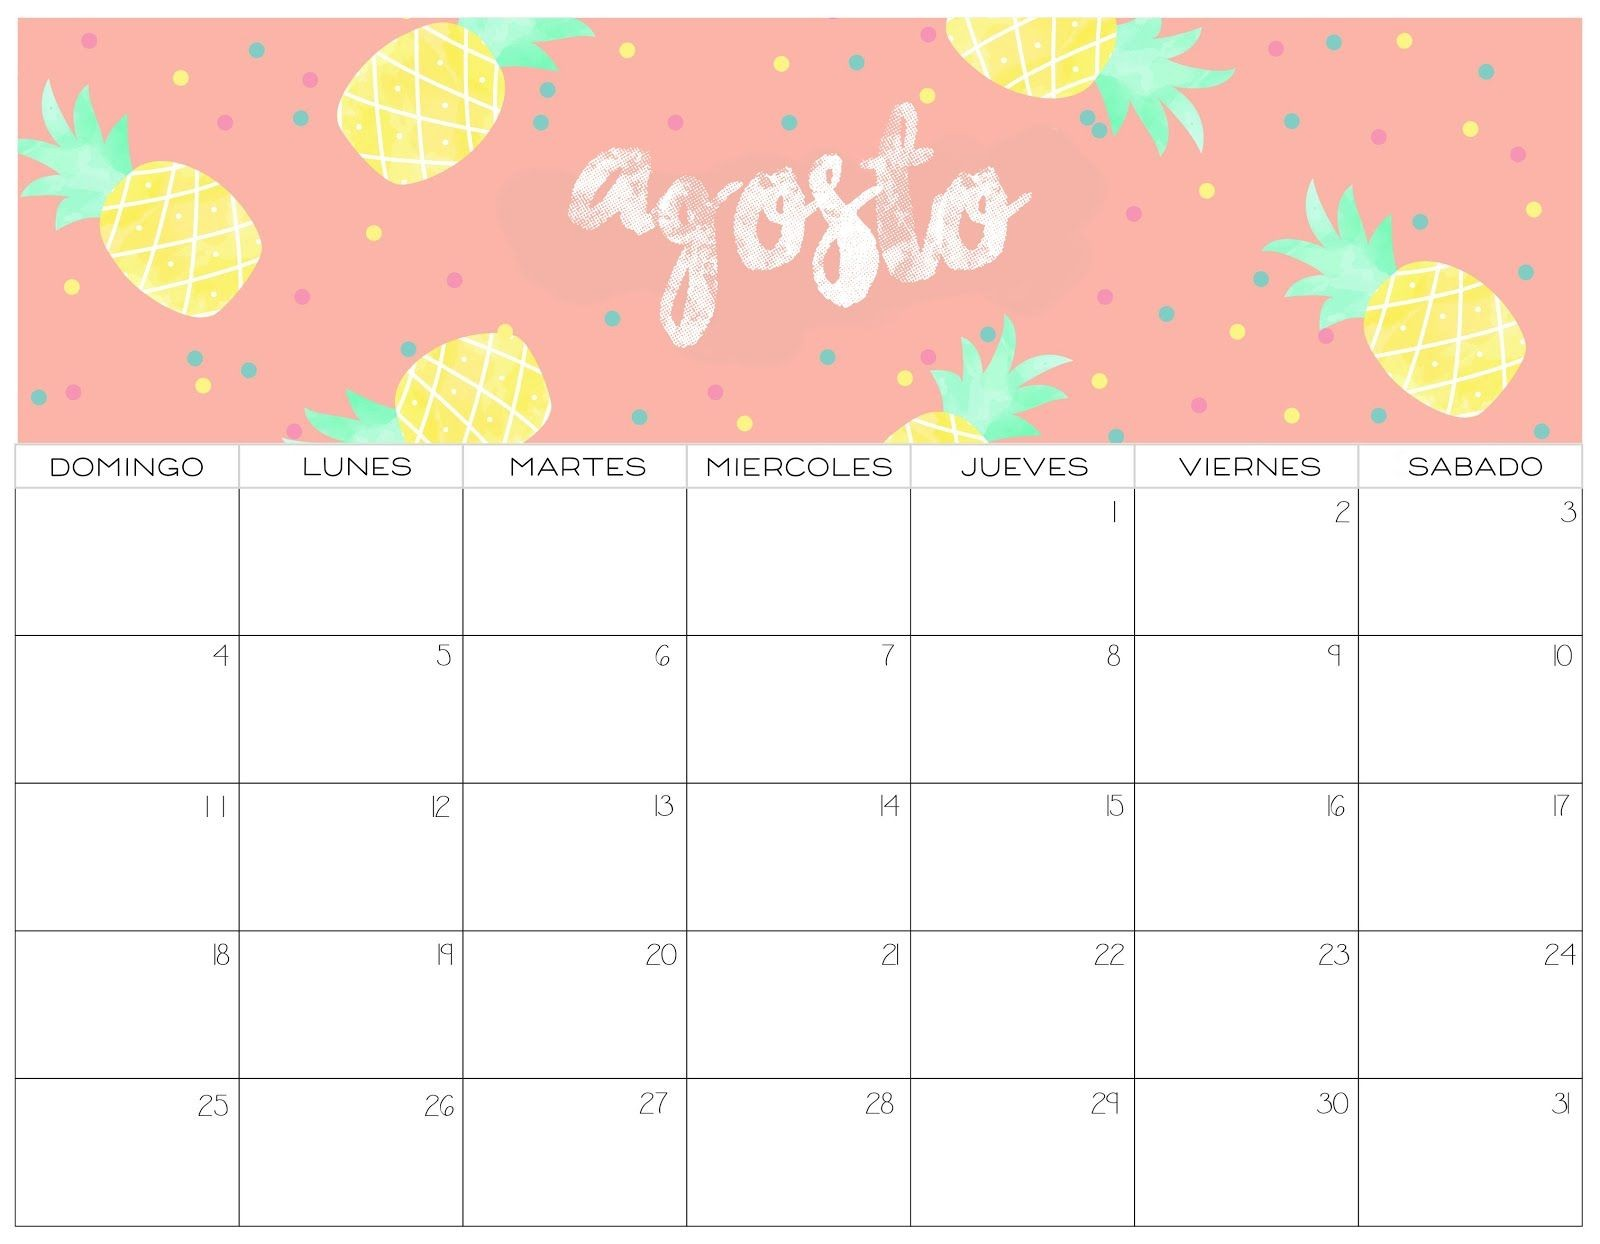 Calendario 2019 colorido 12 meses Meses Pinterest